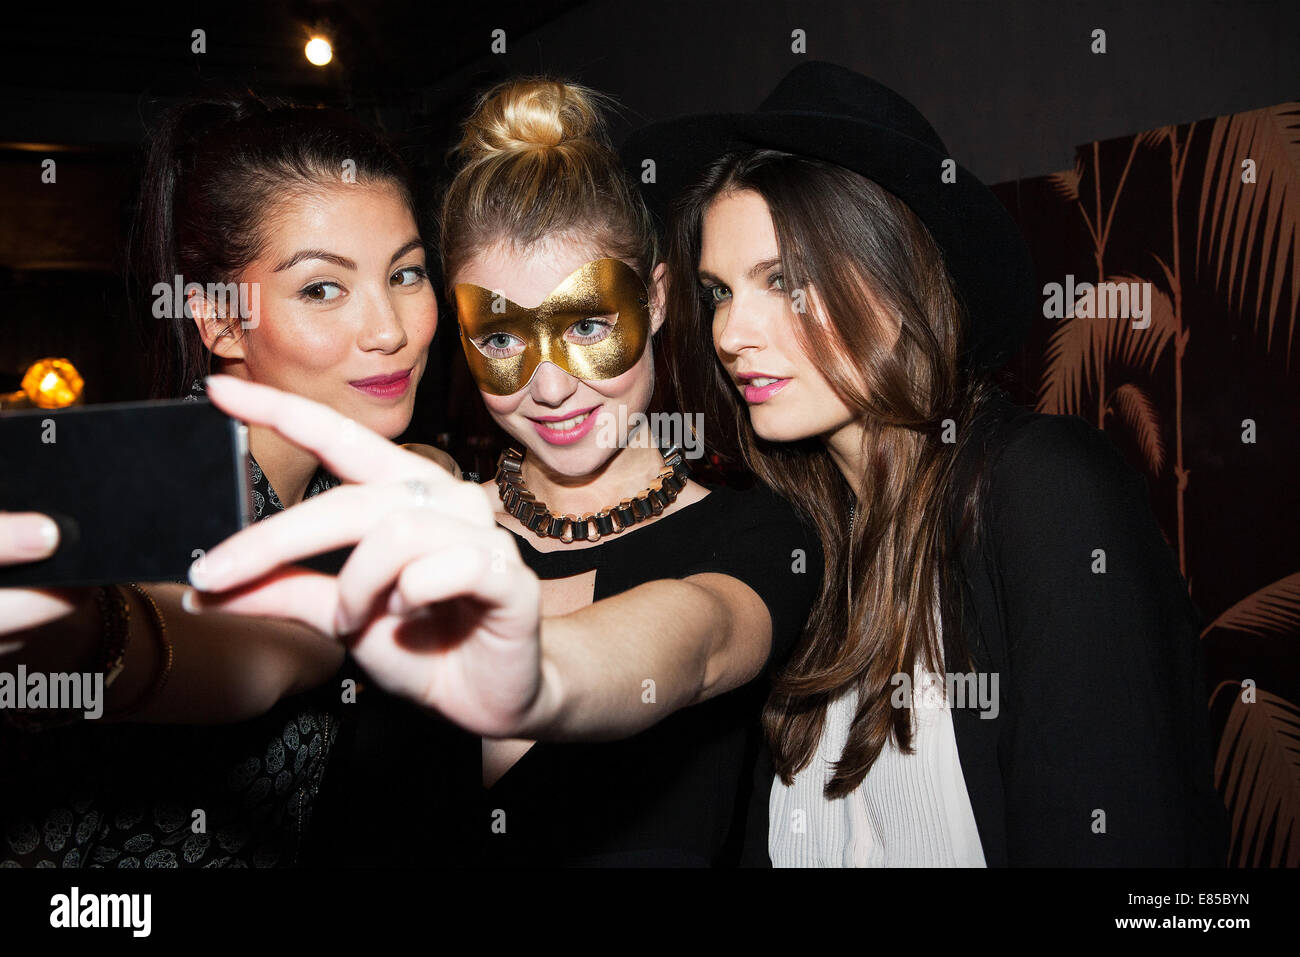 Young women at night club taking selfie - Stock Image